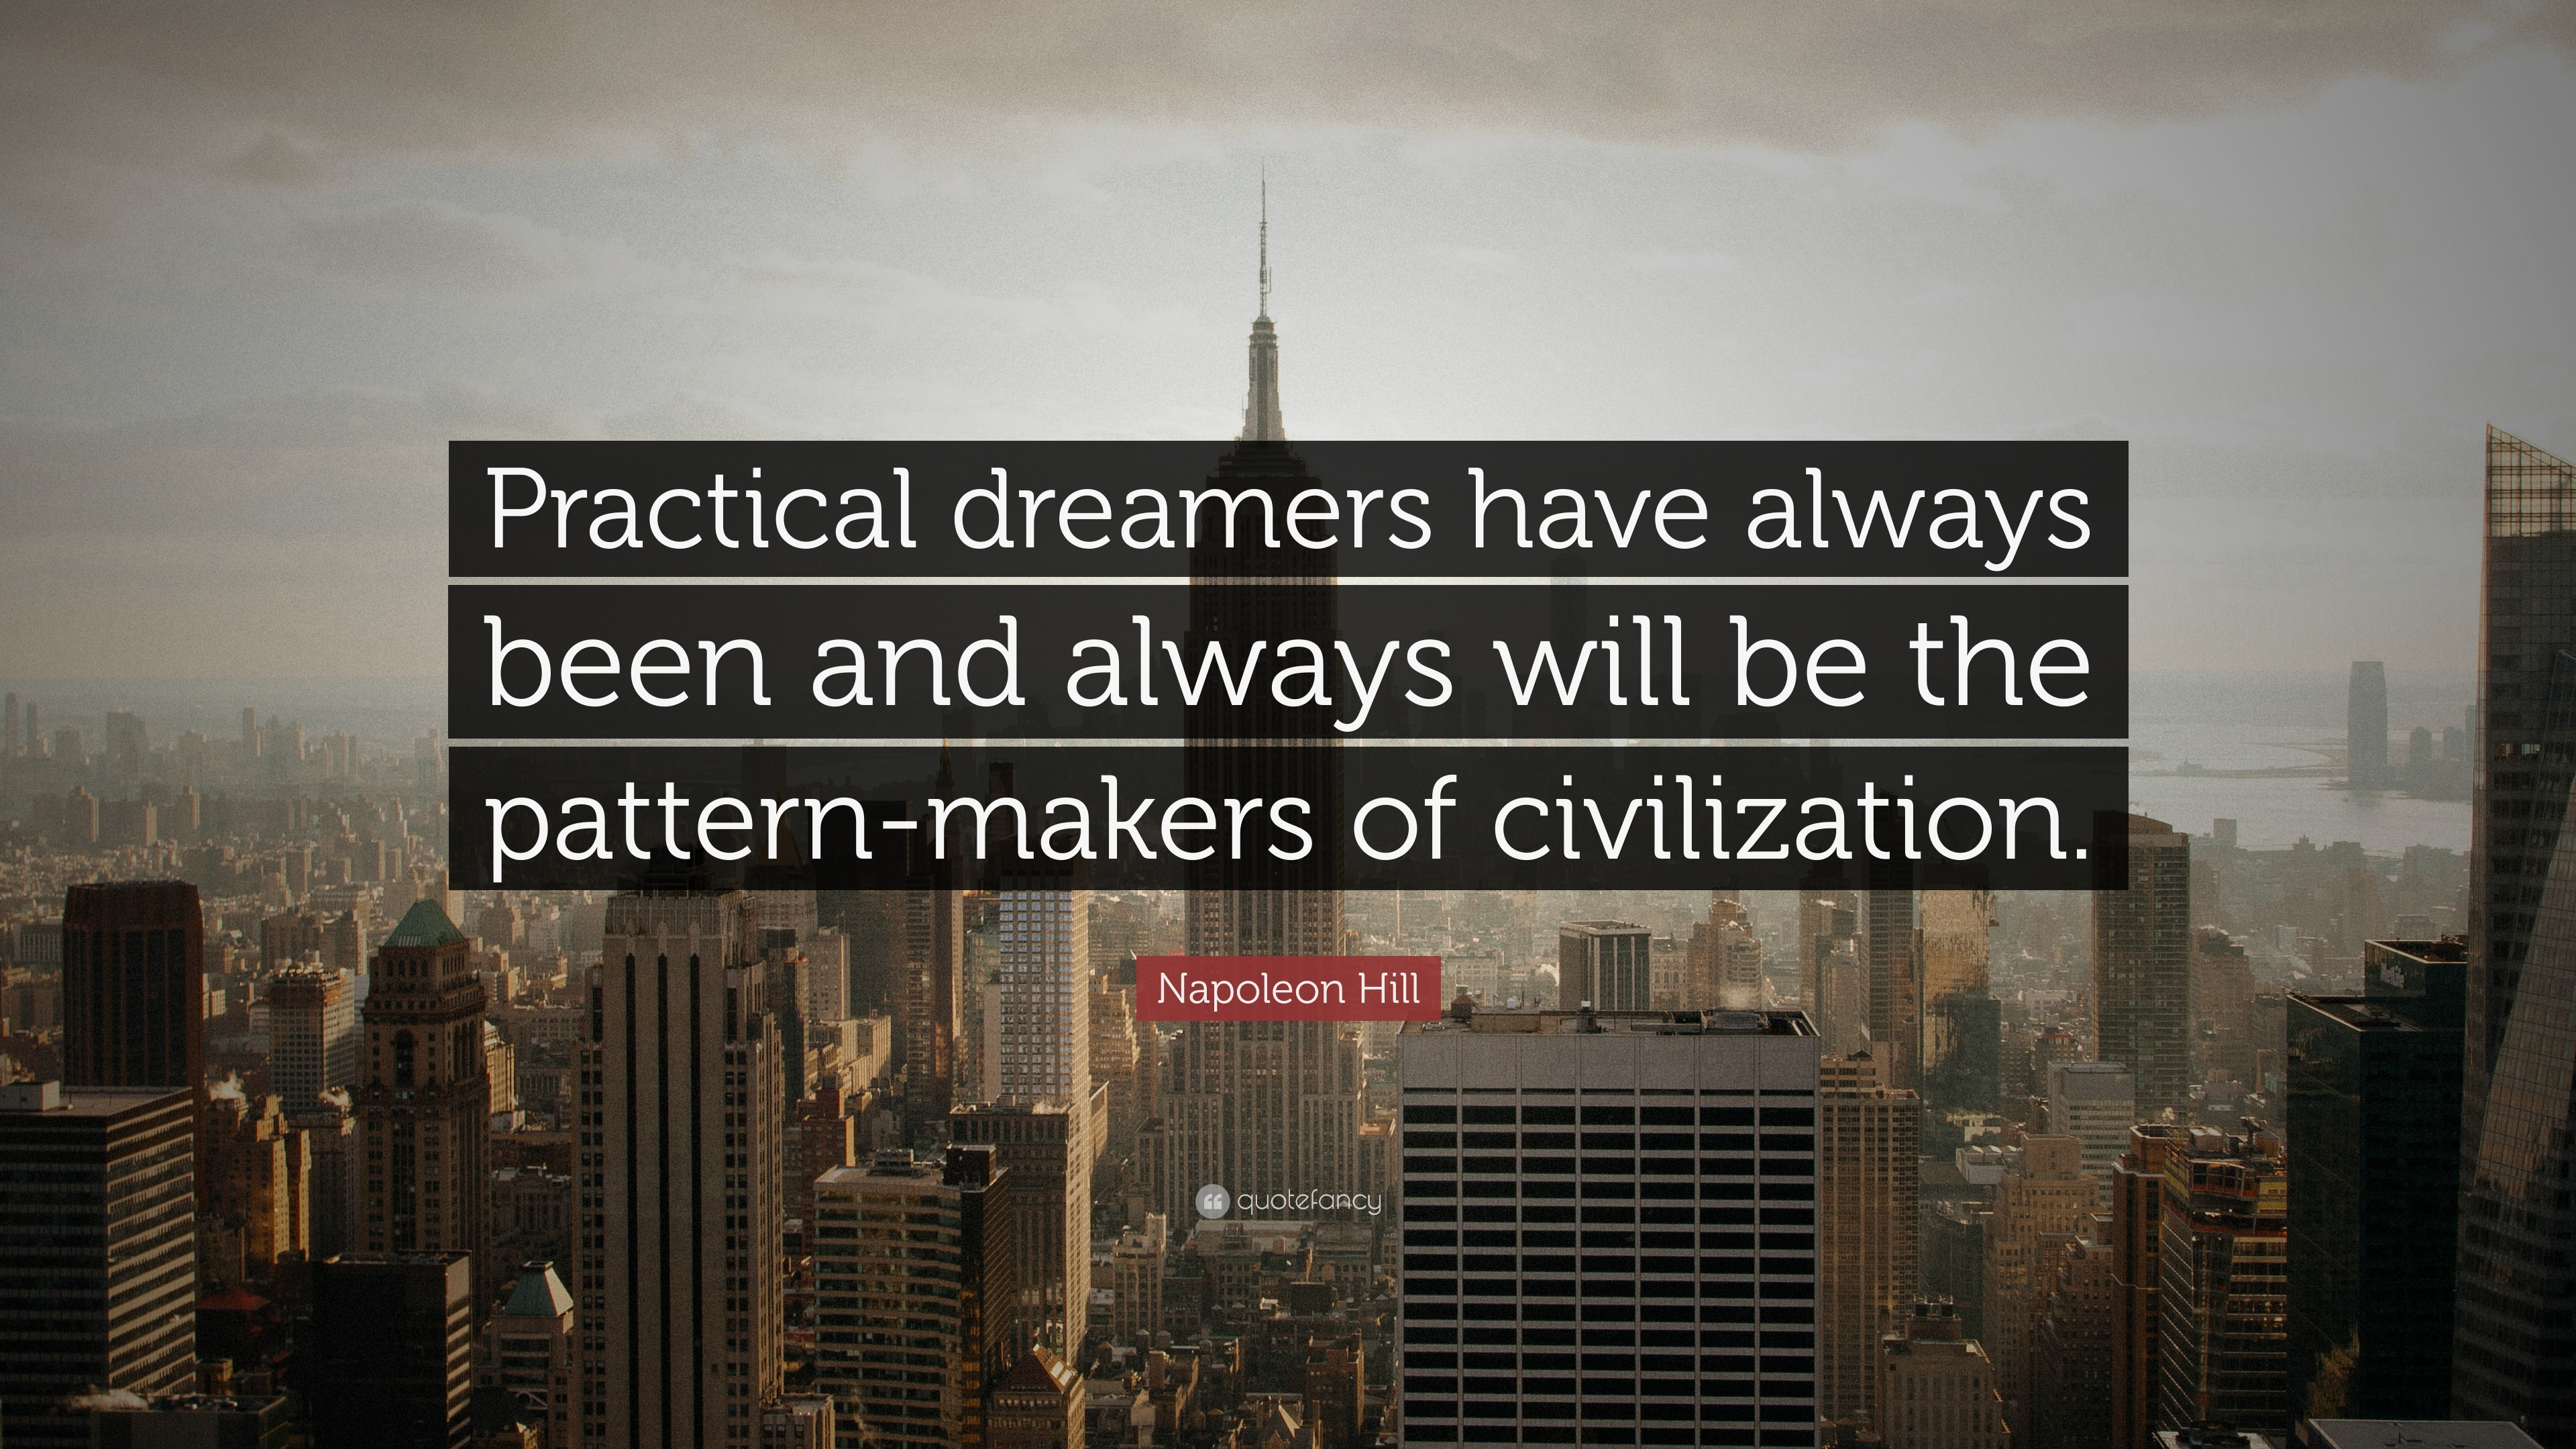 106794-Napoleon-Hill-Quote-Practical-dreamers-have-always-been-and-always